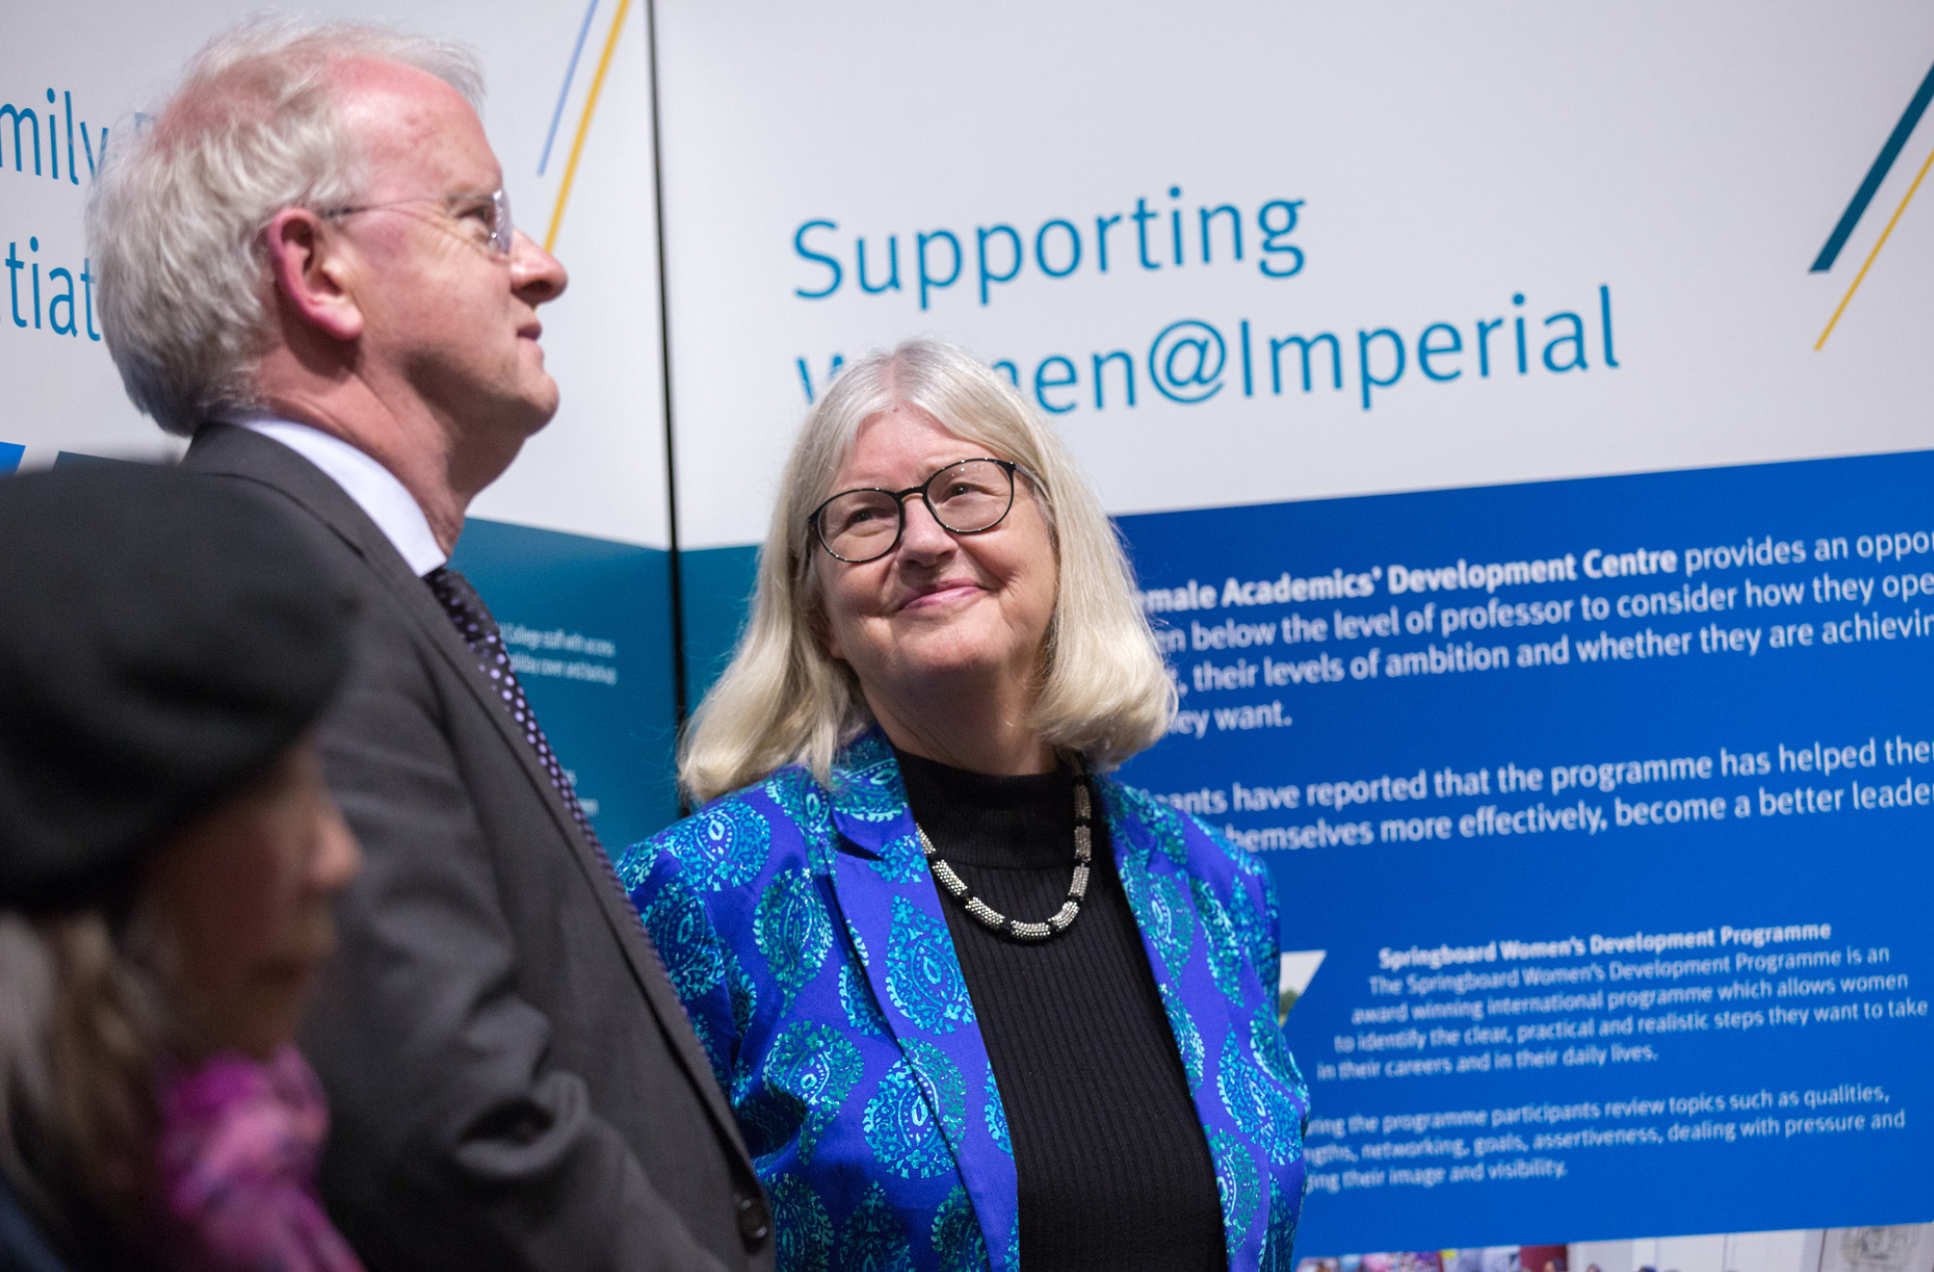 Professor Stirling with Professor Dot Griffiths, the Provost's Envoy for Gender Equality